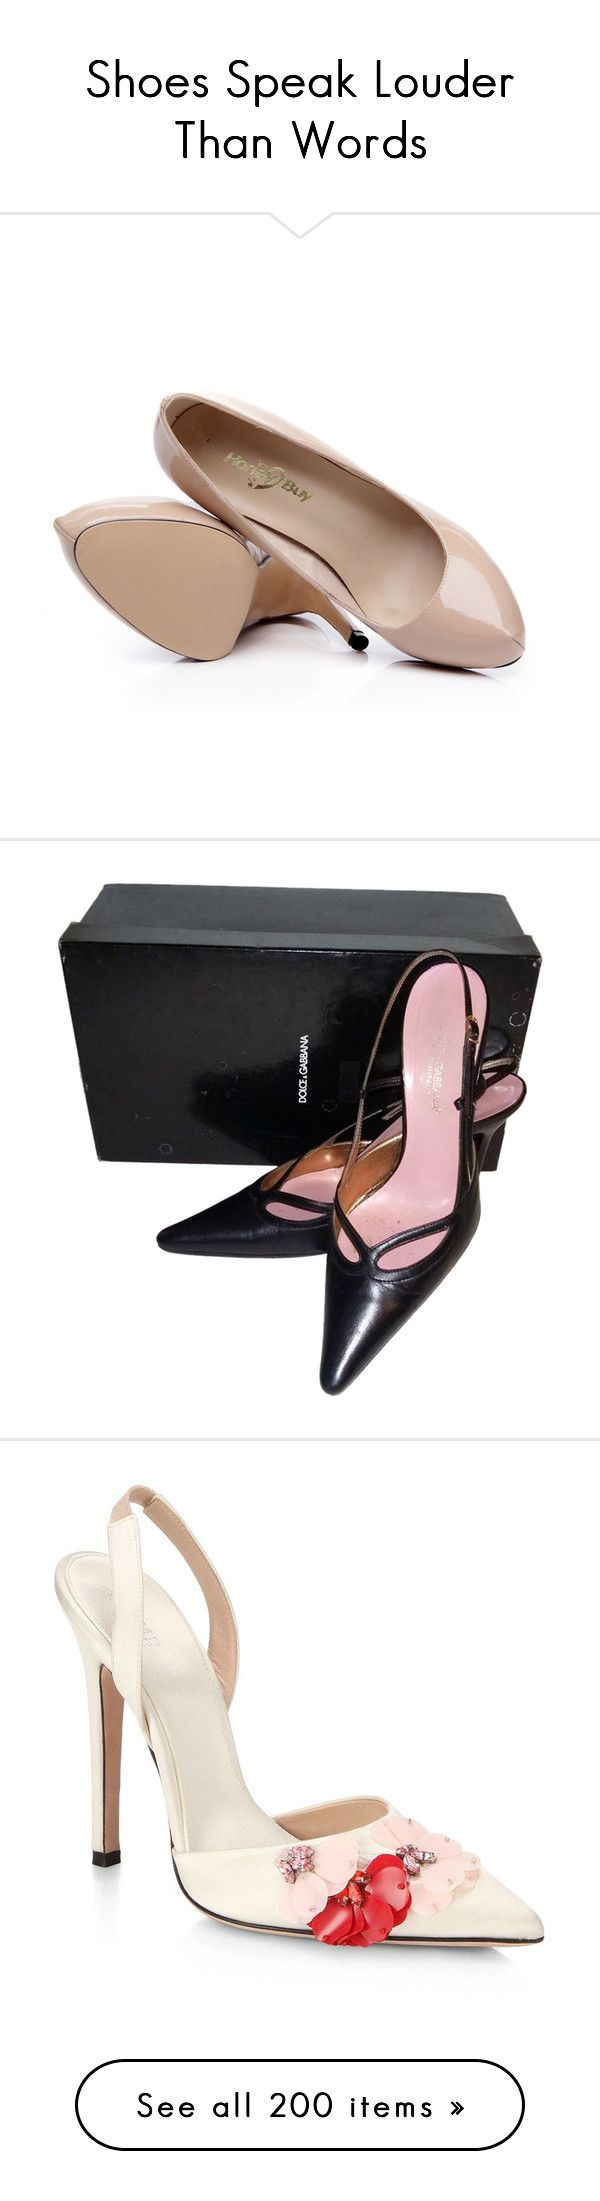 """""""Shoes Speak Louder Than Words"""" by moomoofan1972 ❤ liked on Polyvore featuring shoes, pumps, nude patent leather pumps, famous footwear, nude court shoes, breast pump, nude shoes, black, black leather pumps and leather slingback shoes"""